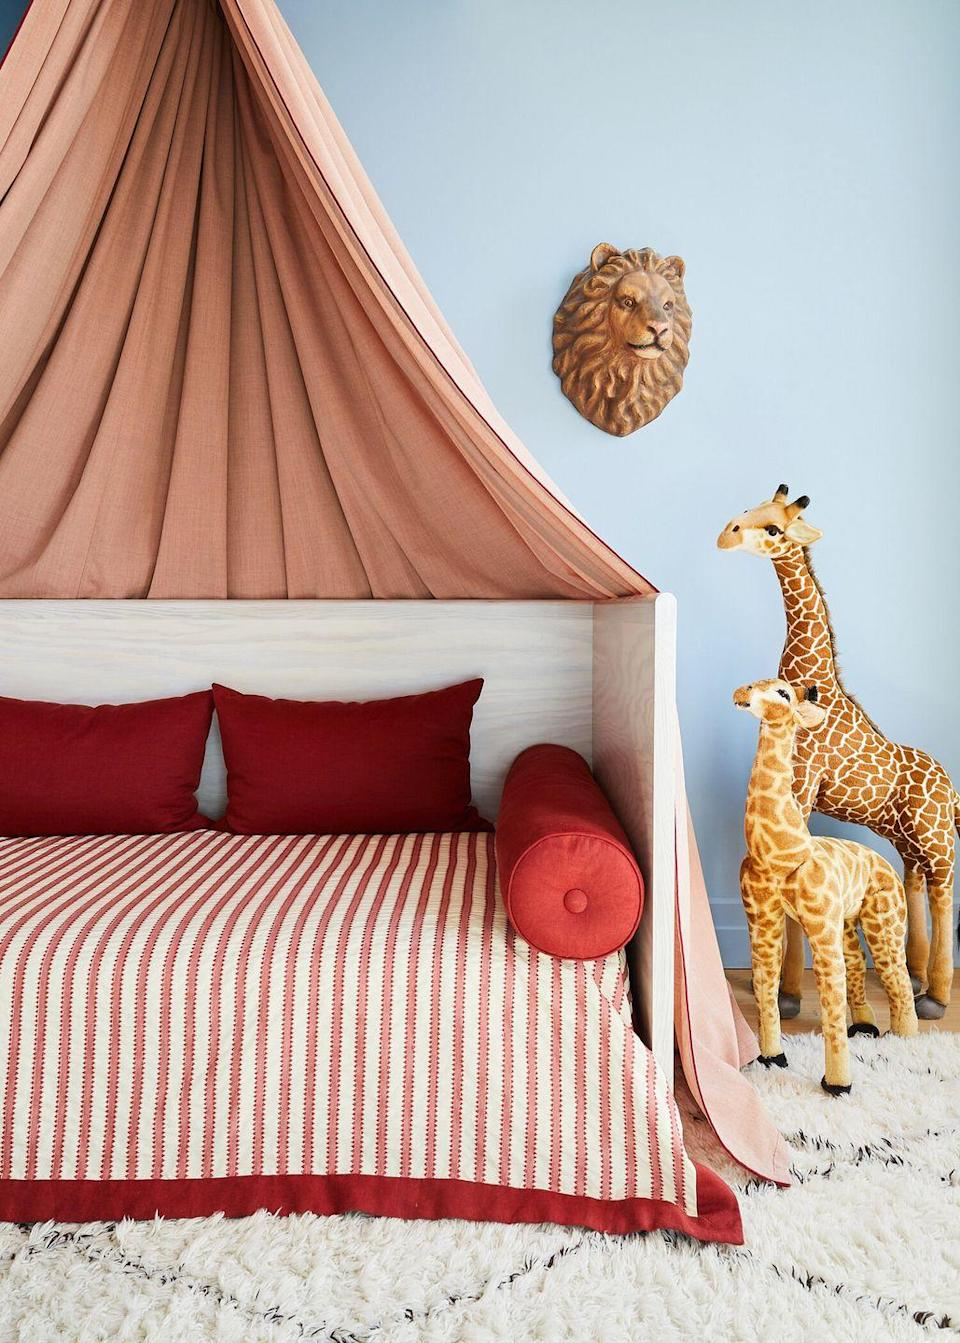 <p>What better place to look for nursery inspiration then a retro circus? Hang a little tent-like canopy over a daybed, opt for red and cream striped textiles, and pile on some throw and bolster pillows. Then pack in the animal motifs. Today, the daybed can be used as a comfy place for late-night feedings, but one day it'll be a big-kid bed—stylish, ageless, multi-purpose furniture is always a good investment.</p>